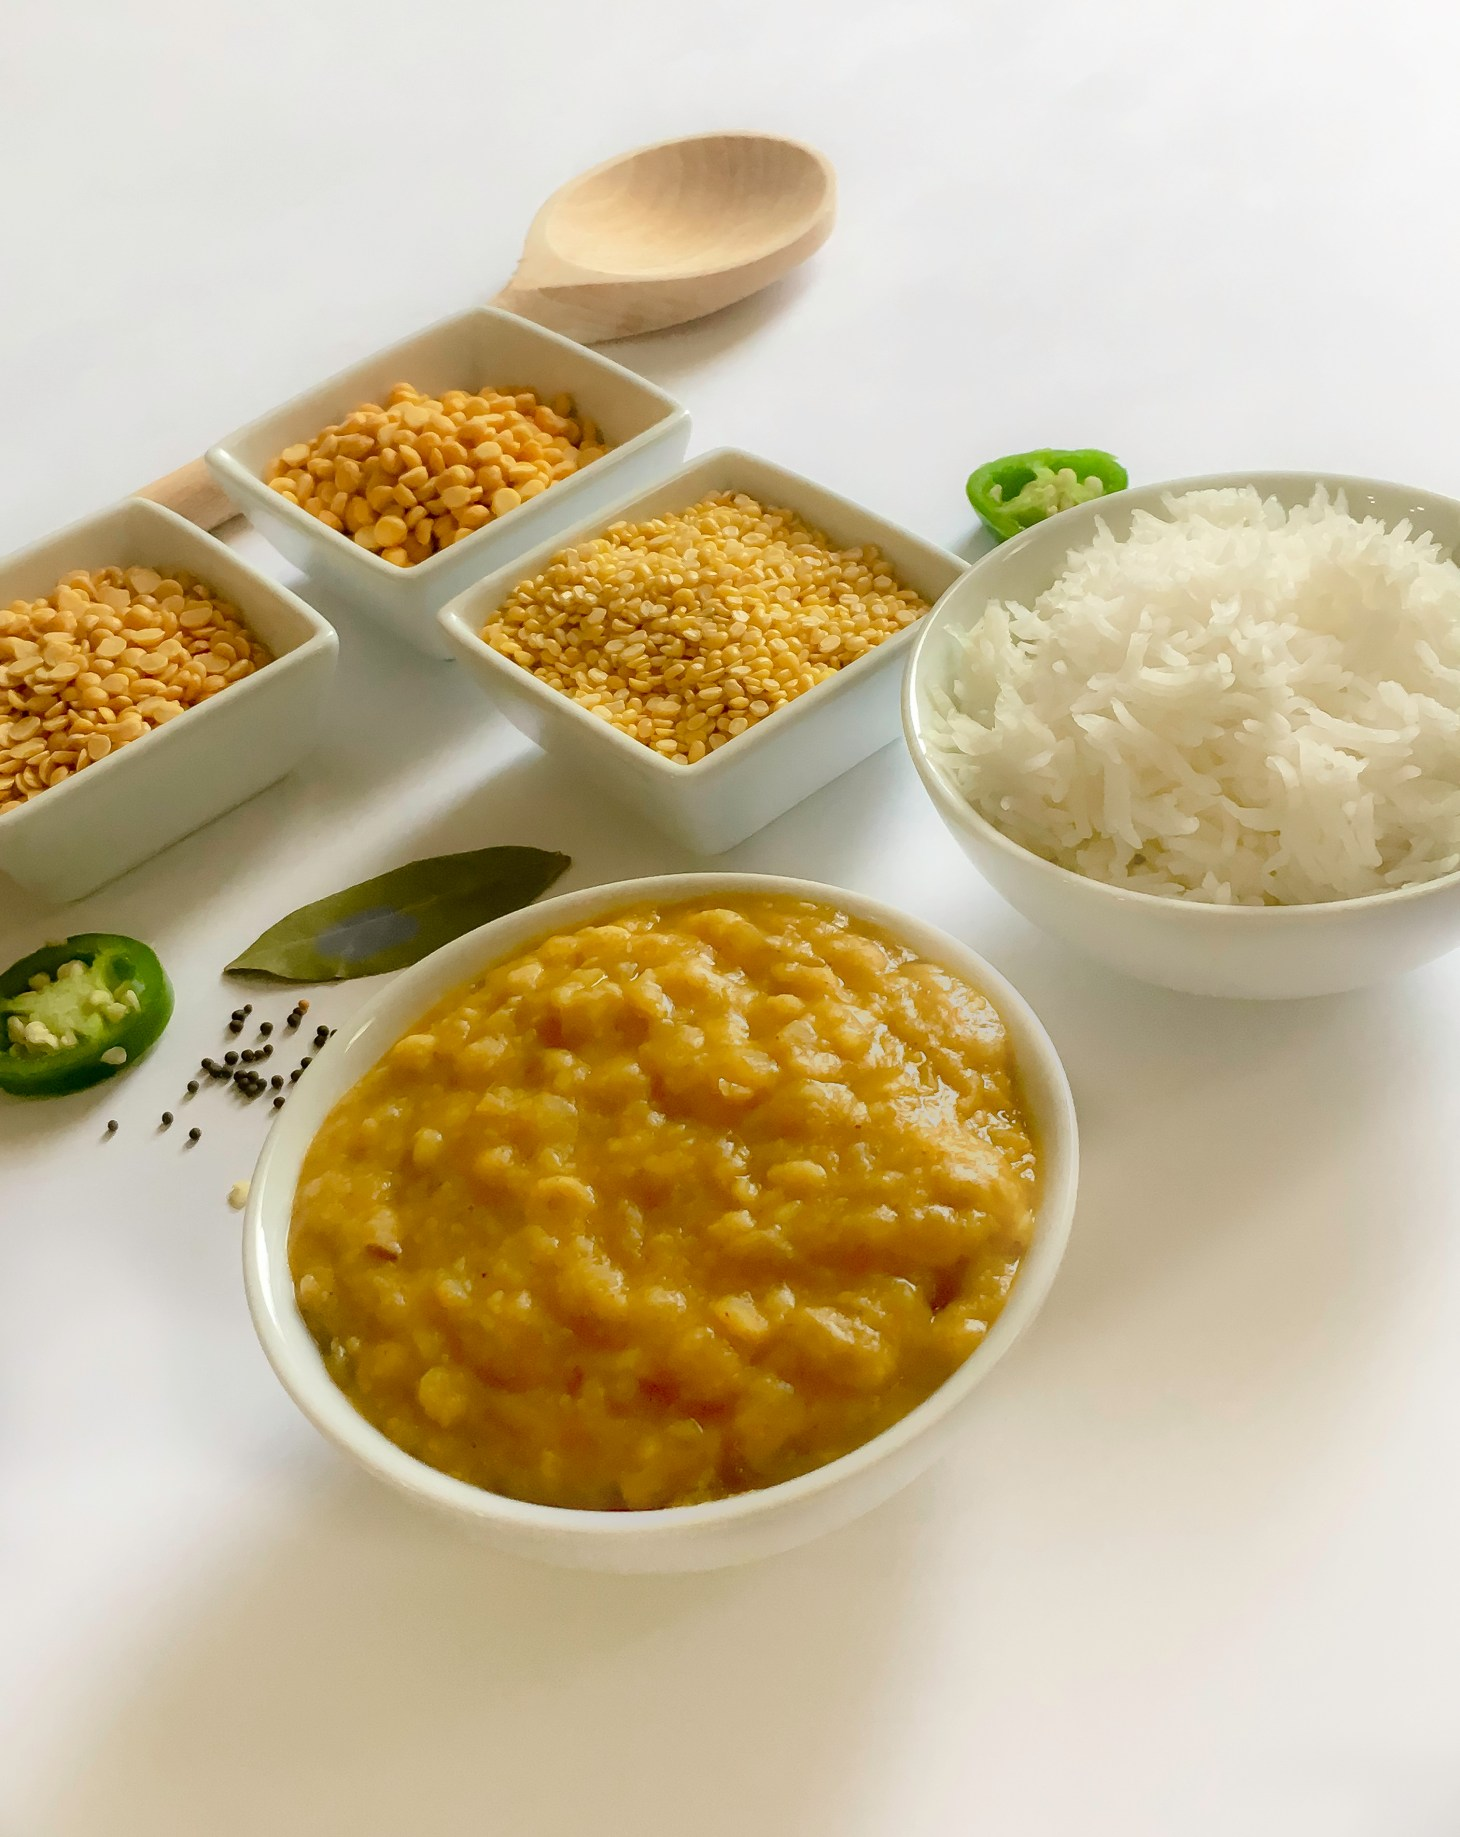 Dal Tadka Indian Lentils tempered with herbs and spices #vegetarian #Indianvegetarian #myvegetarianfamily